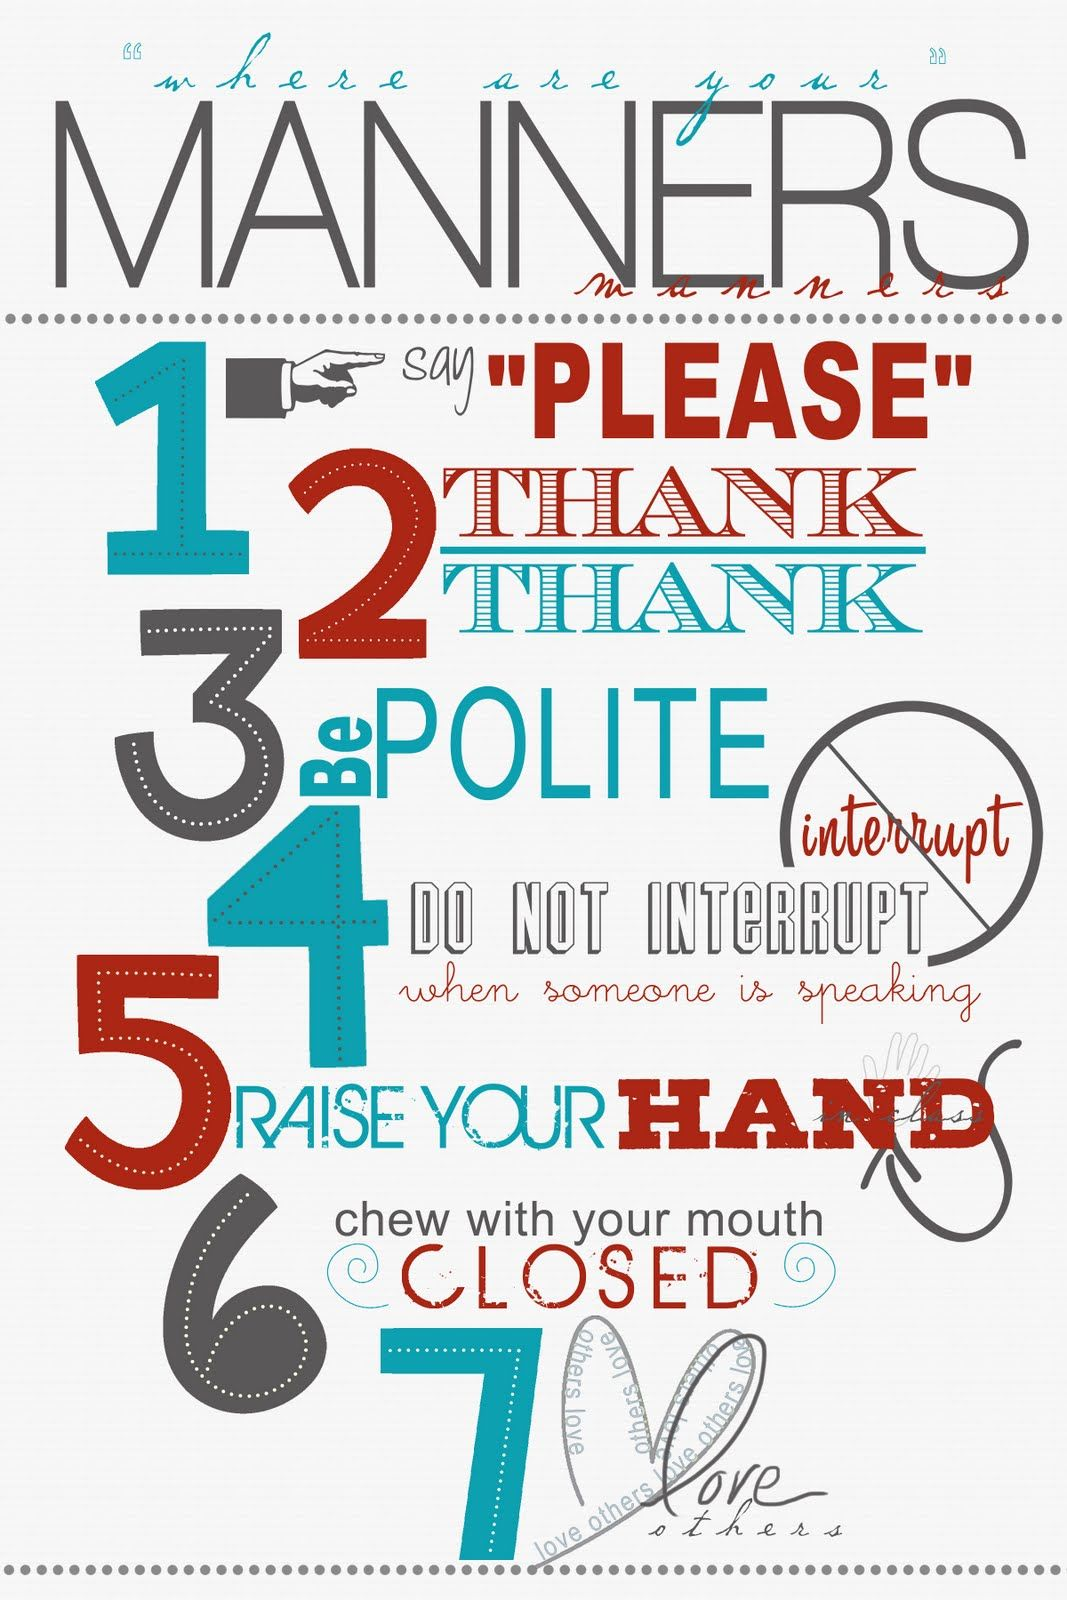 Manners They Are Under Valued And A Rarity But Those Who Are Active Members Of The Good